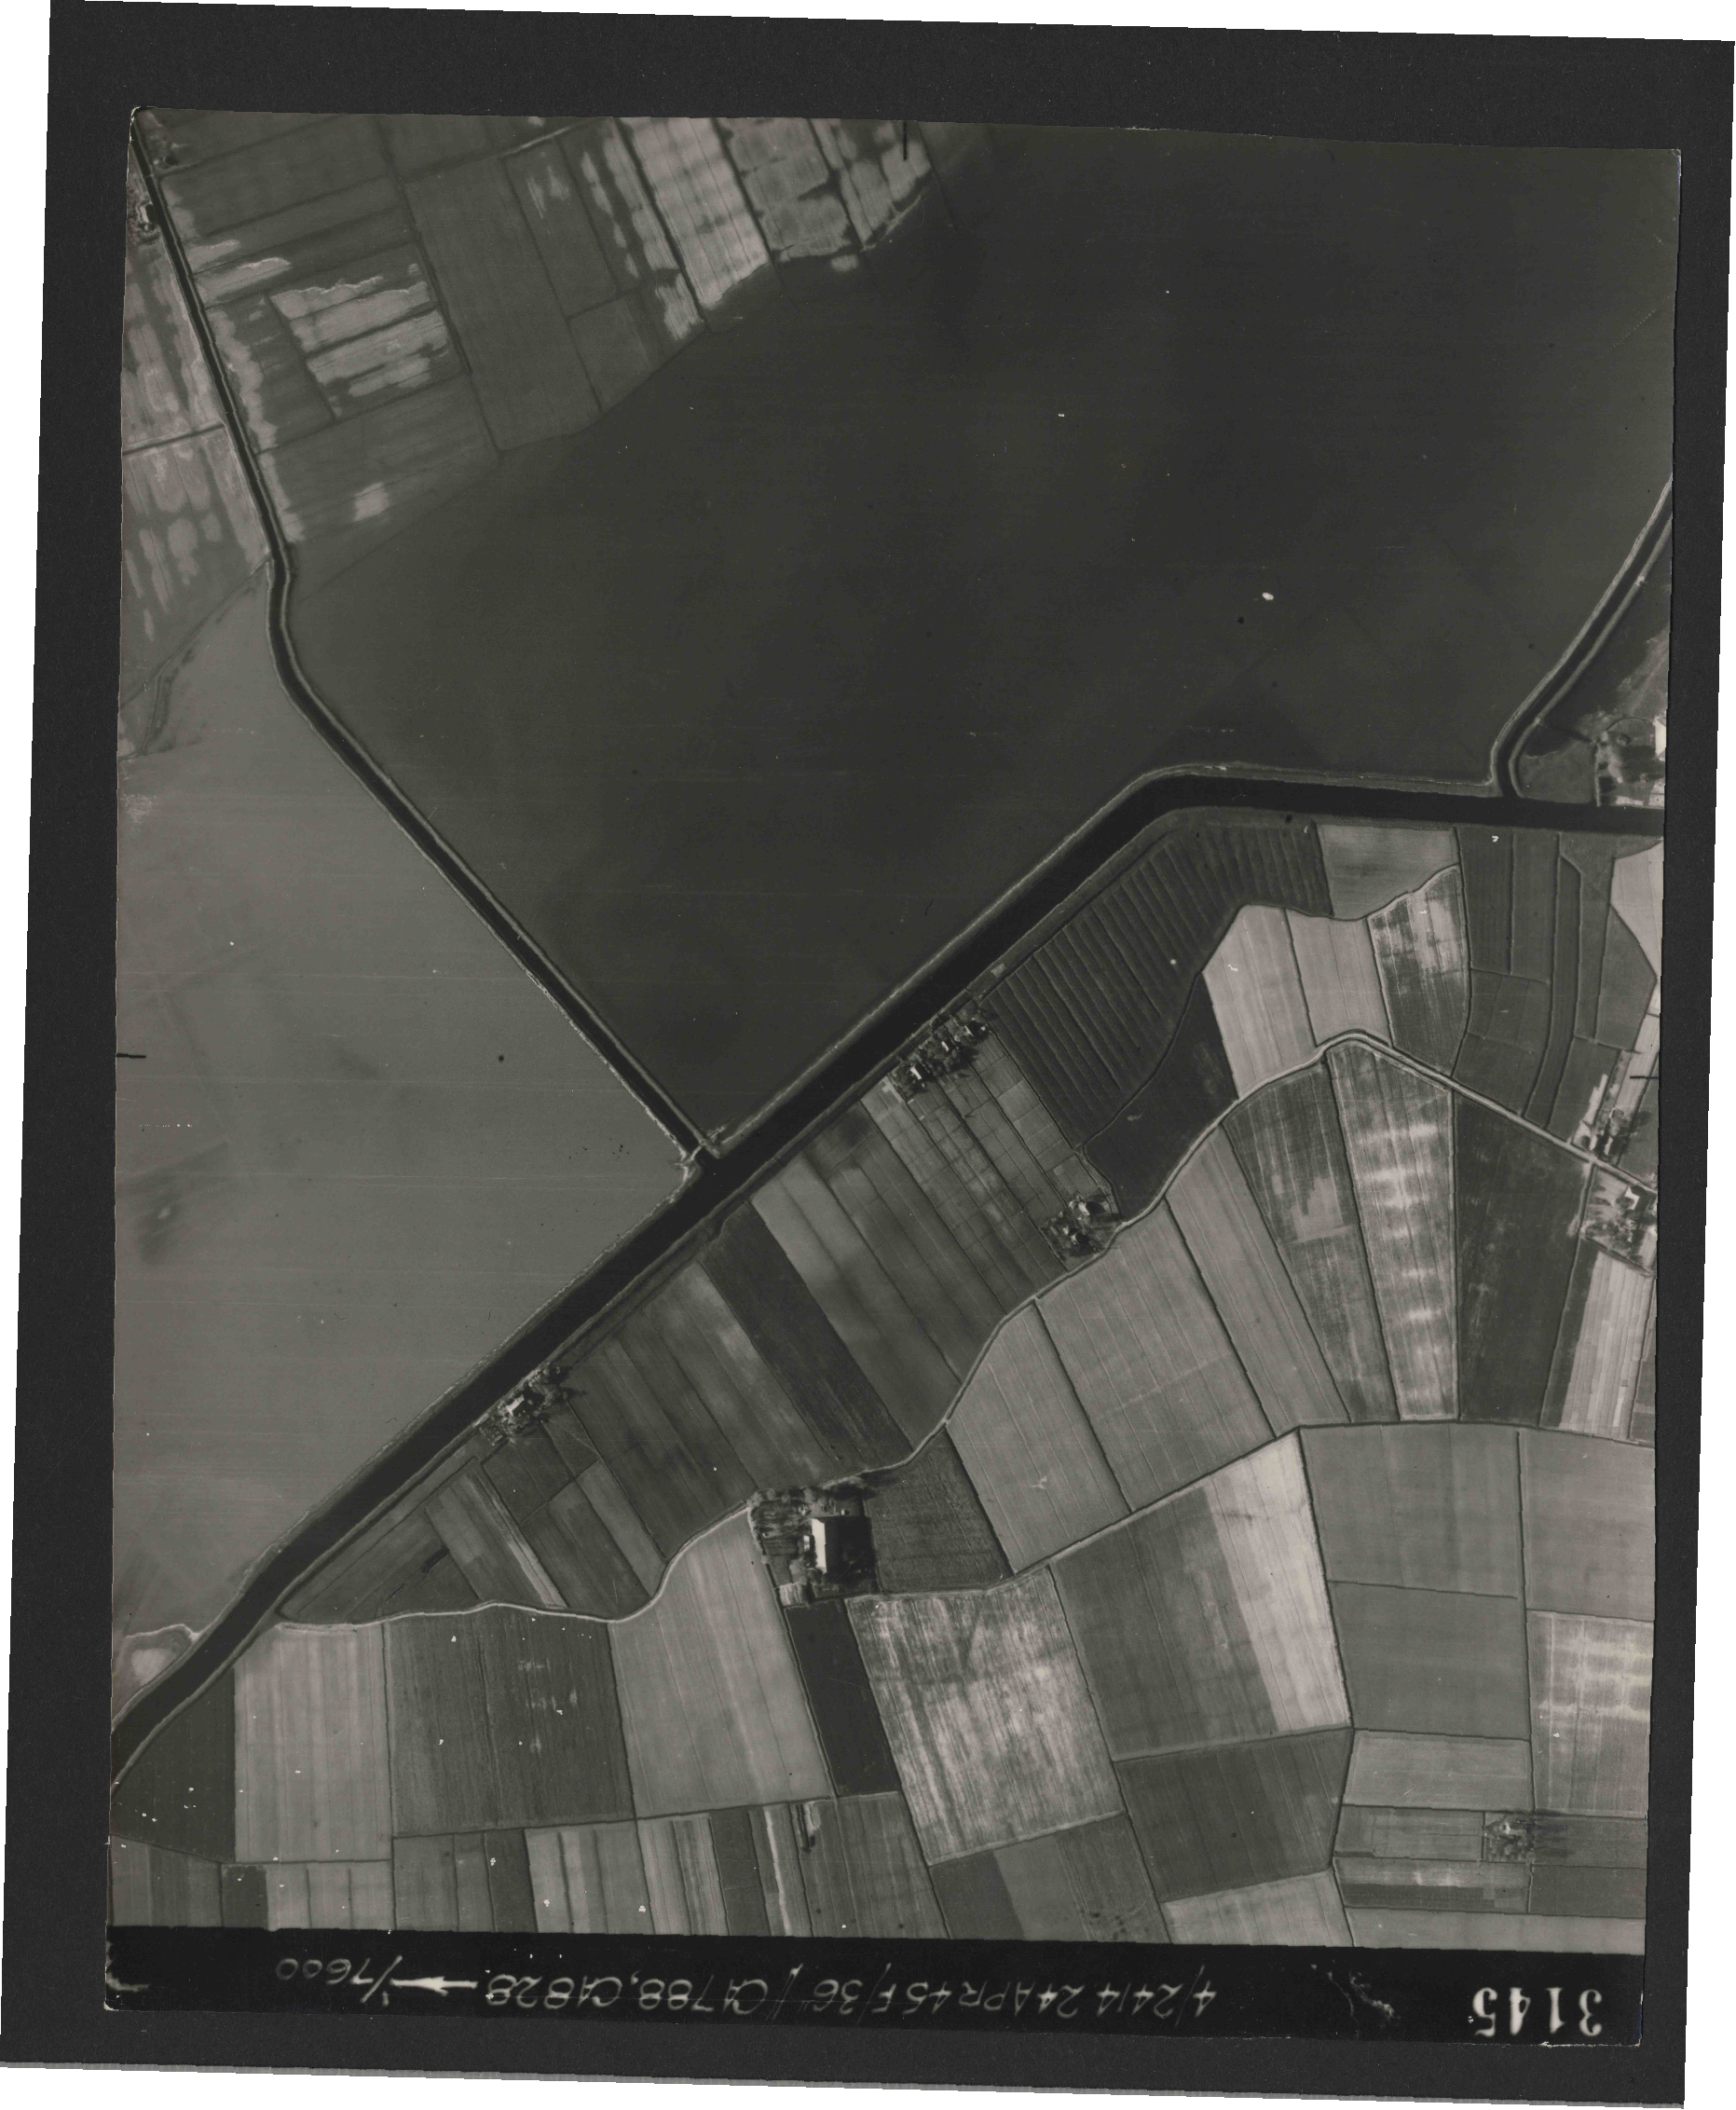 Collection RAF aerial photos 1940-1945 - flight 111, run 08, photo 3145